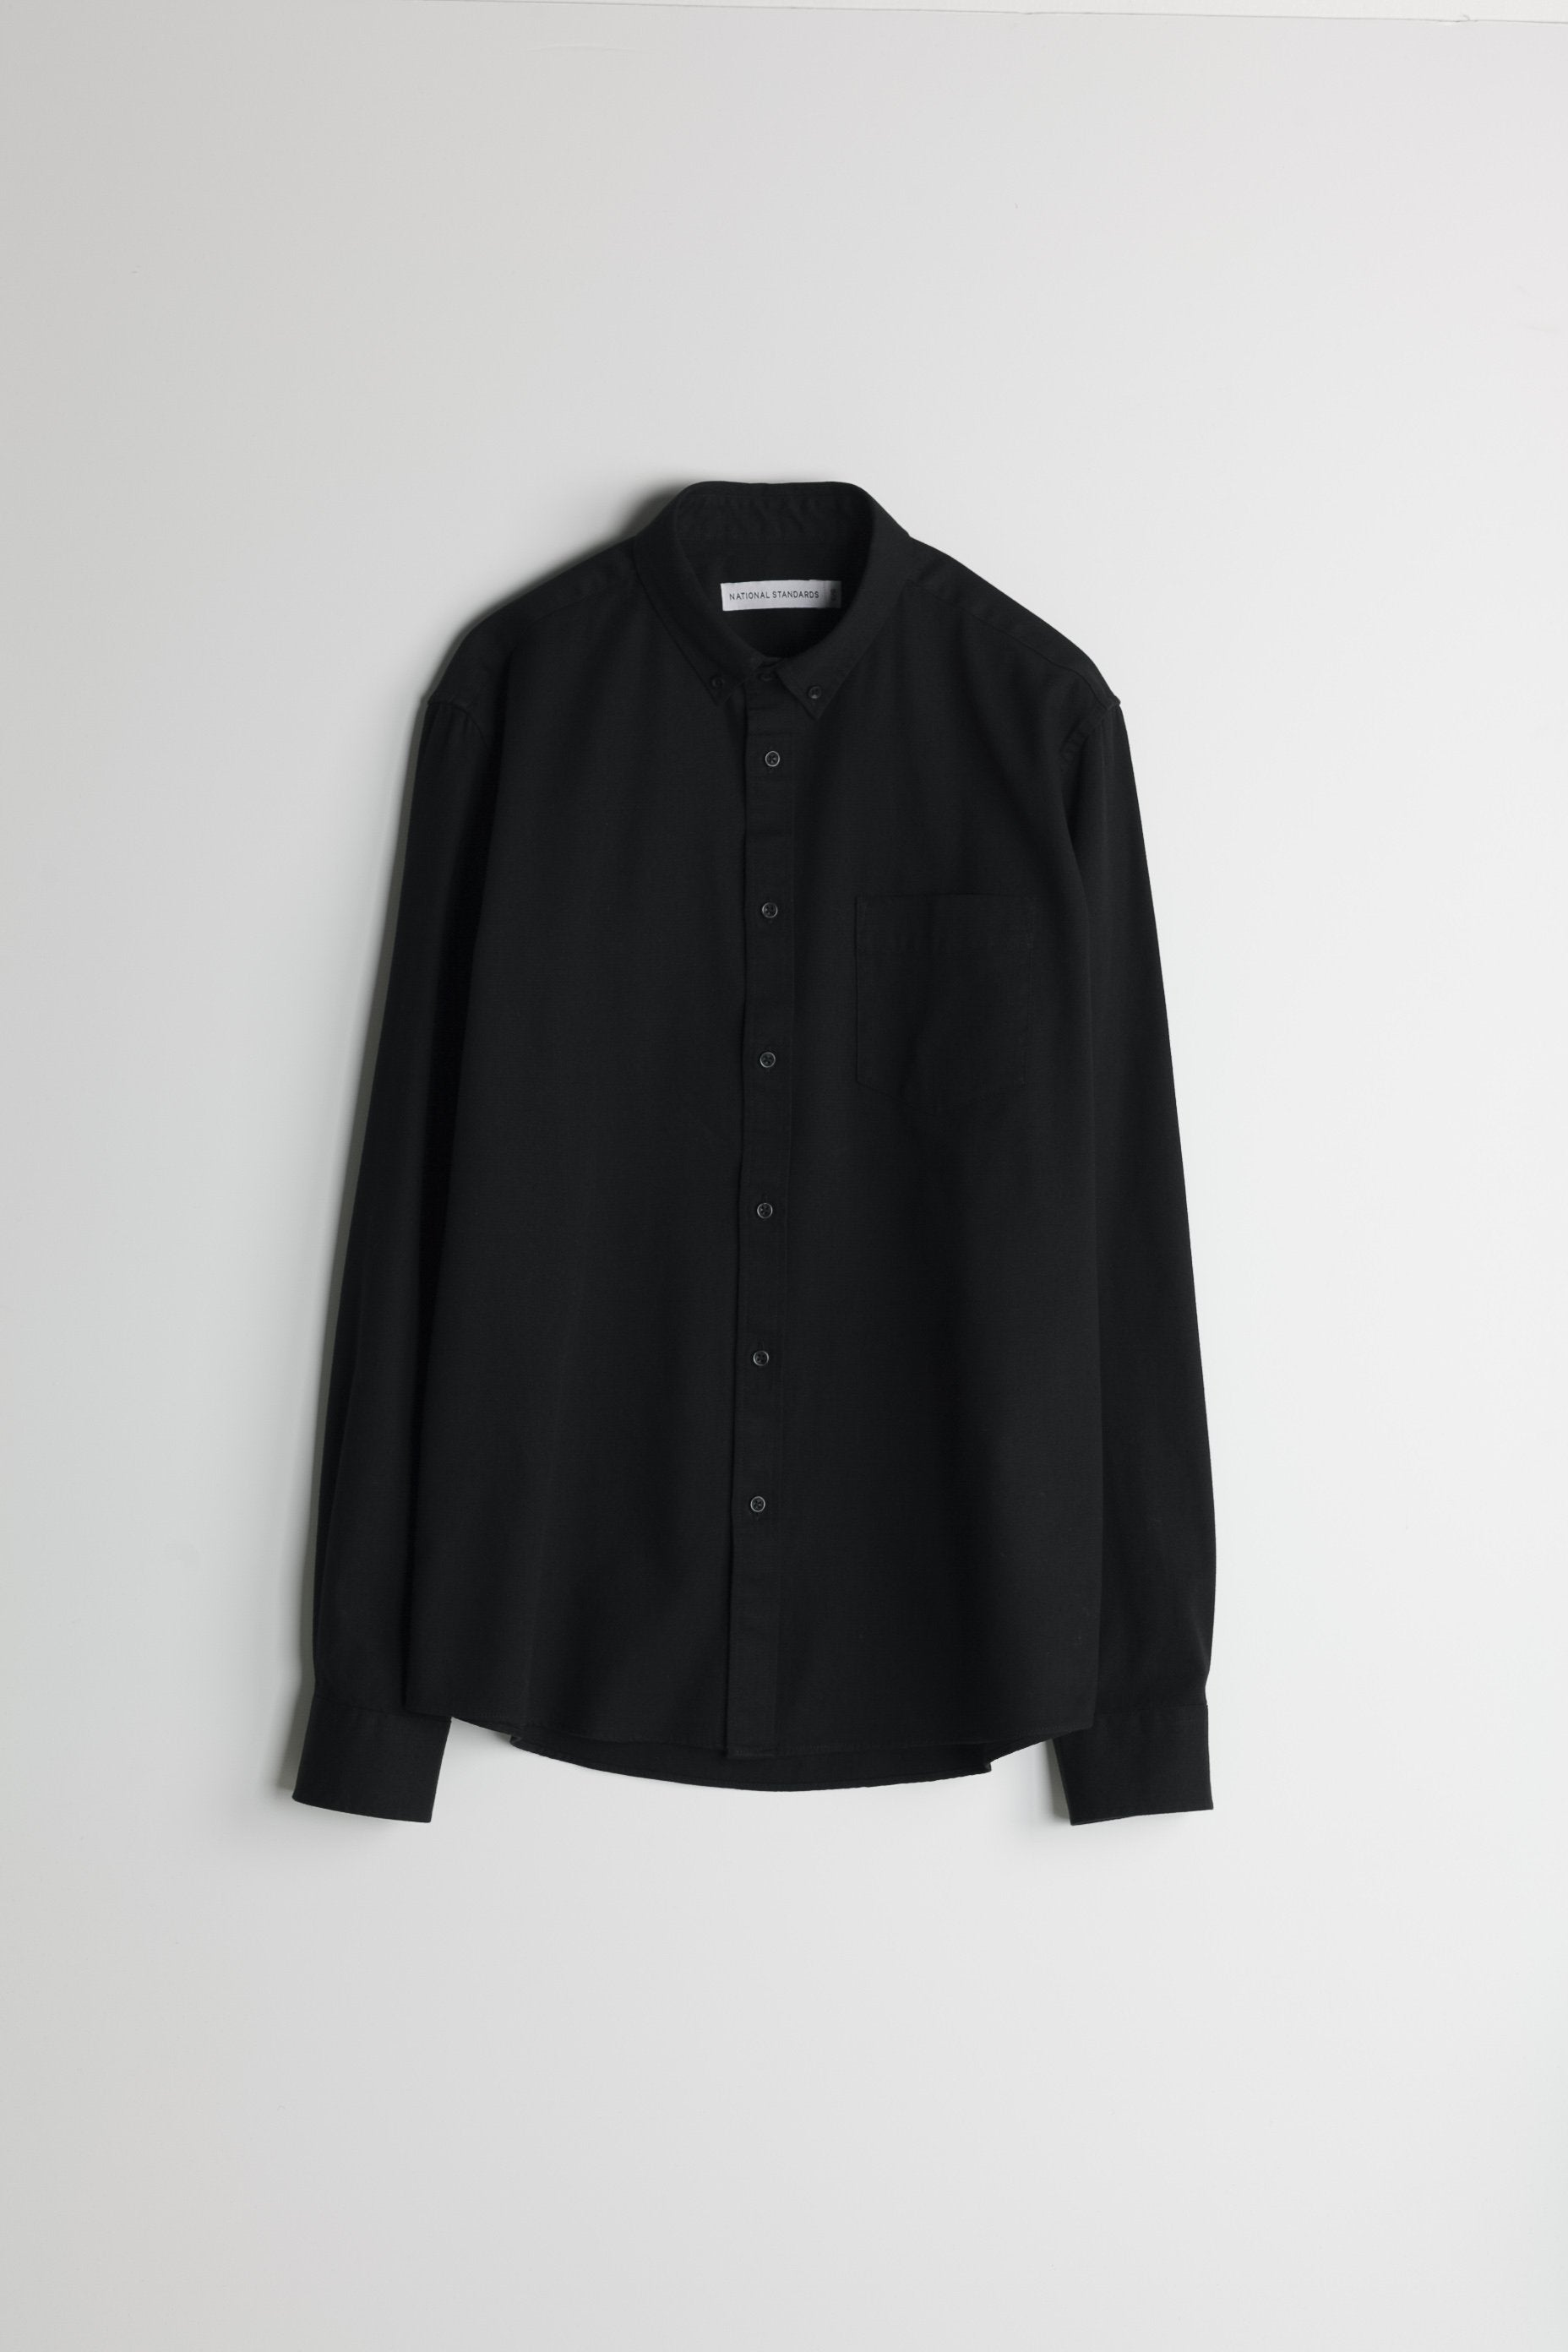 japanese-washed-oxford-in-black 001